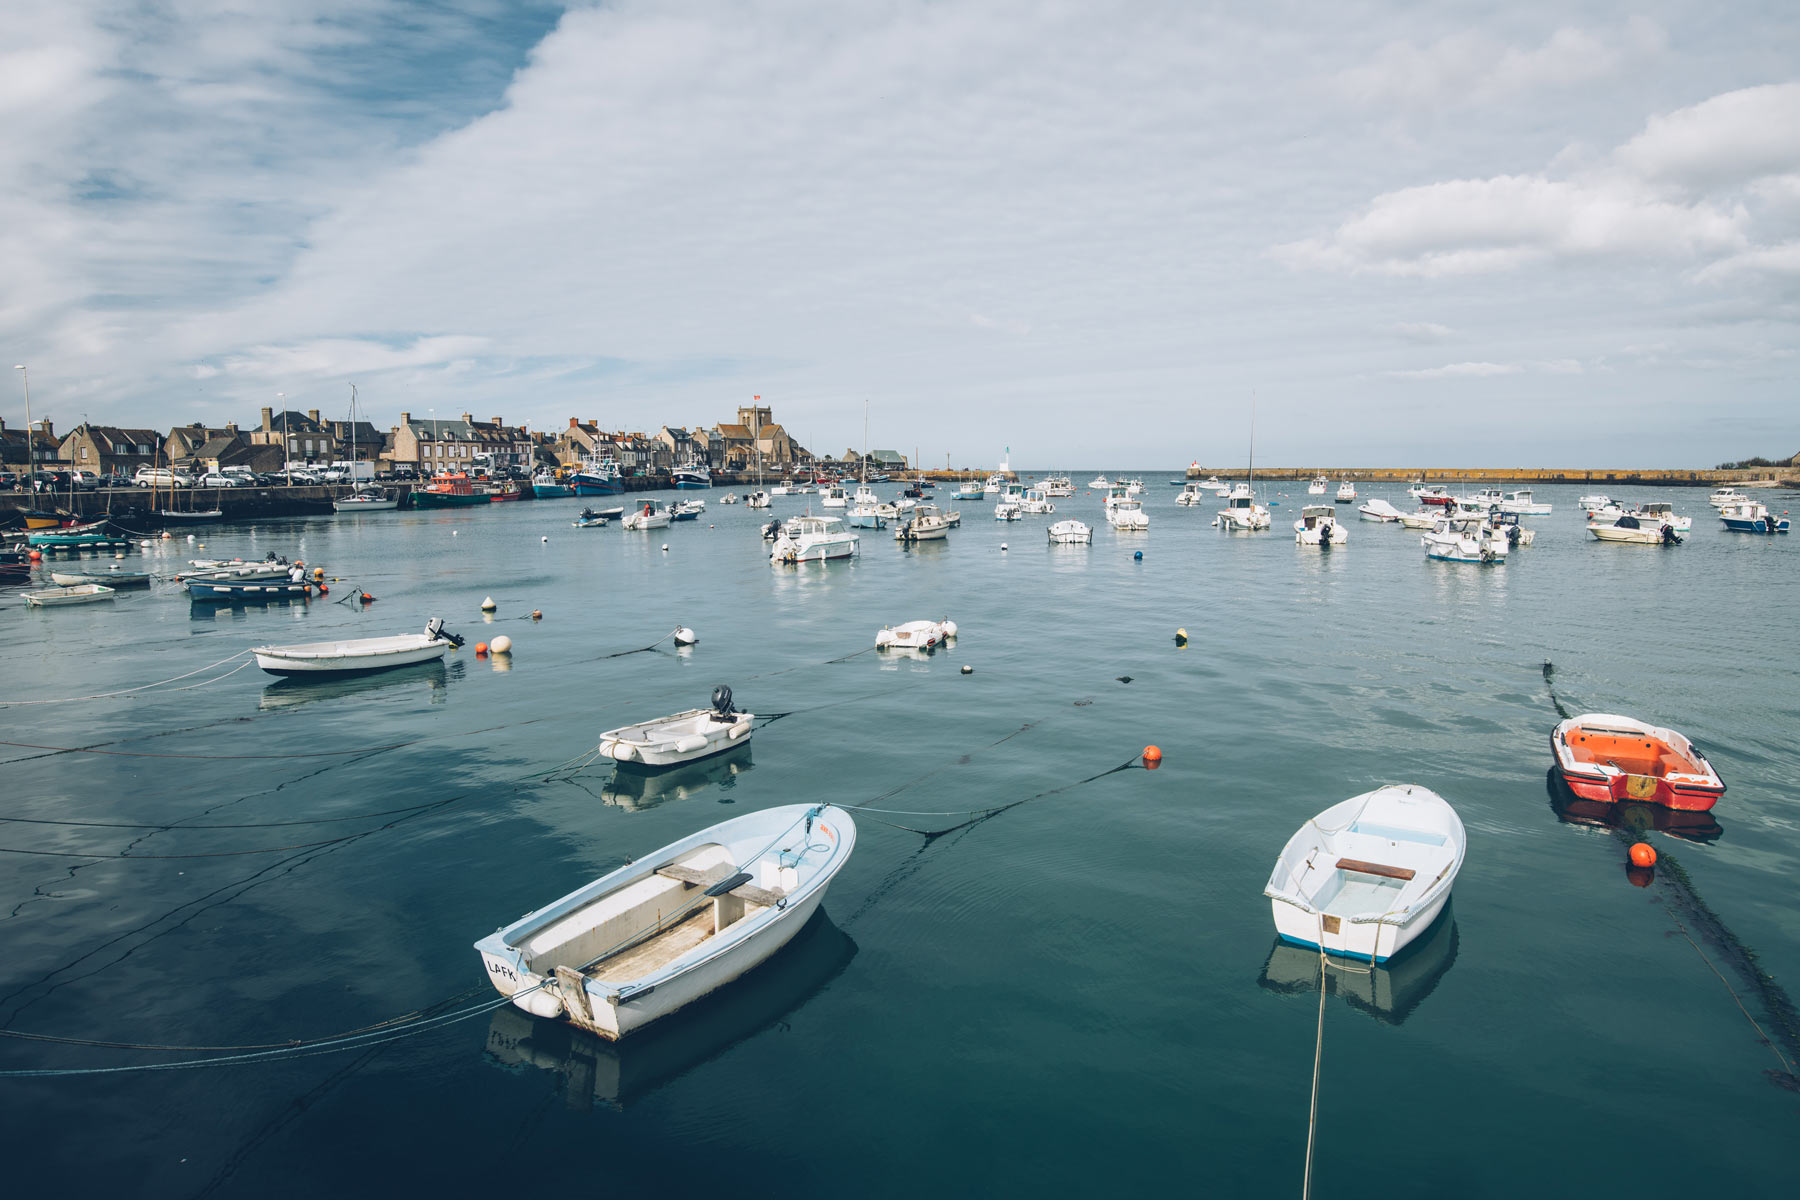 Plus beau village de France en Normandie: Barfleur